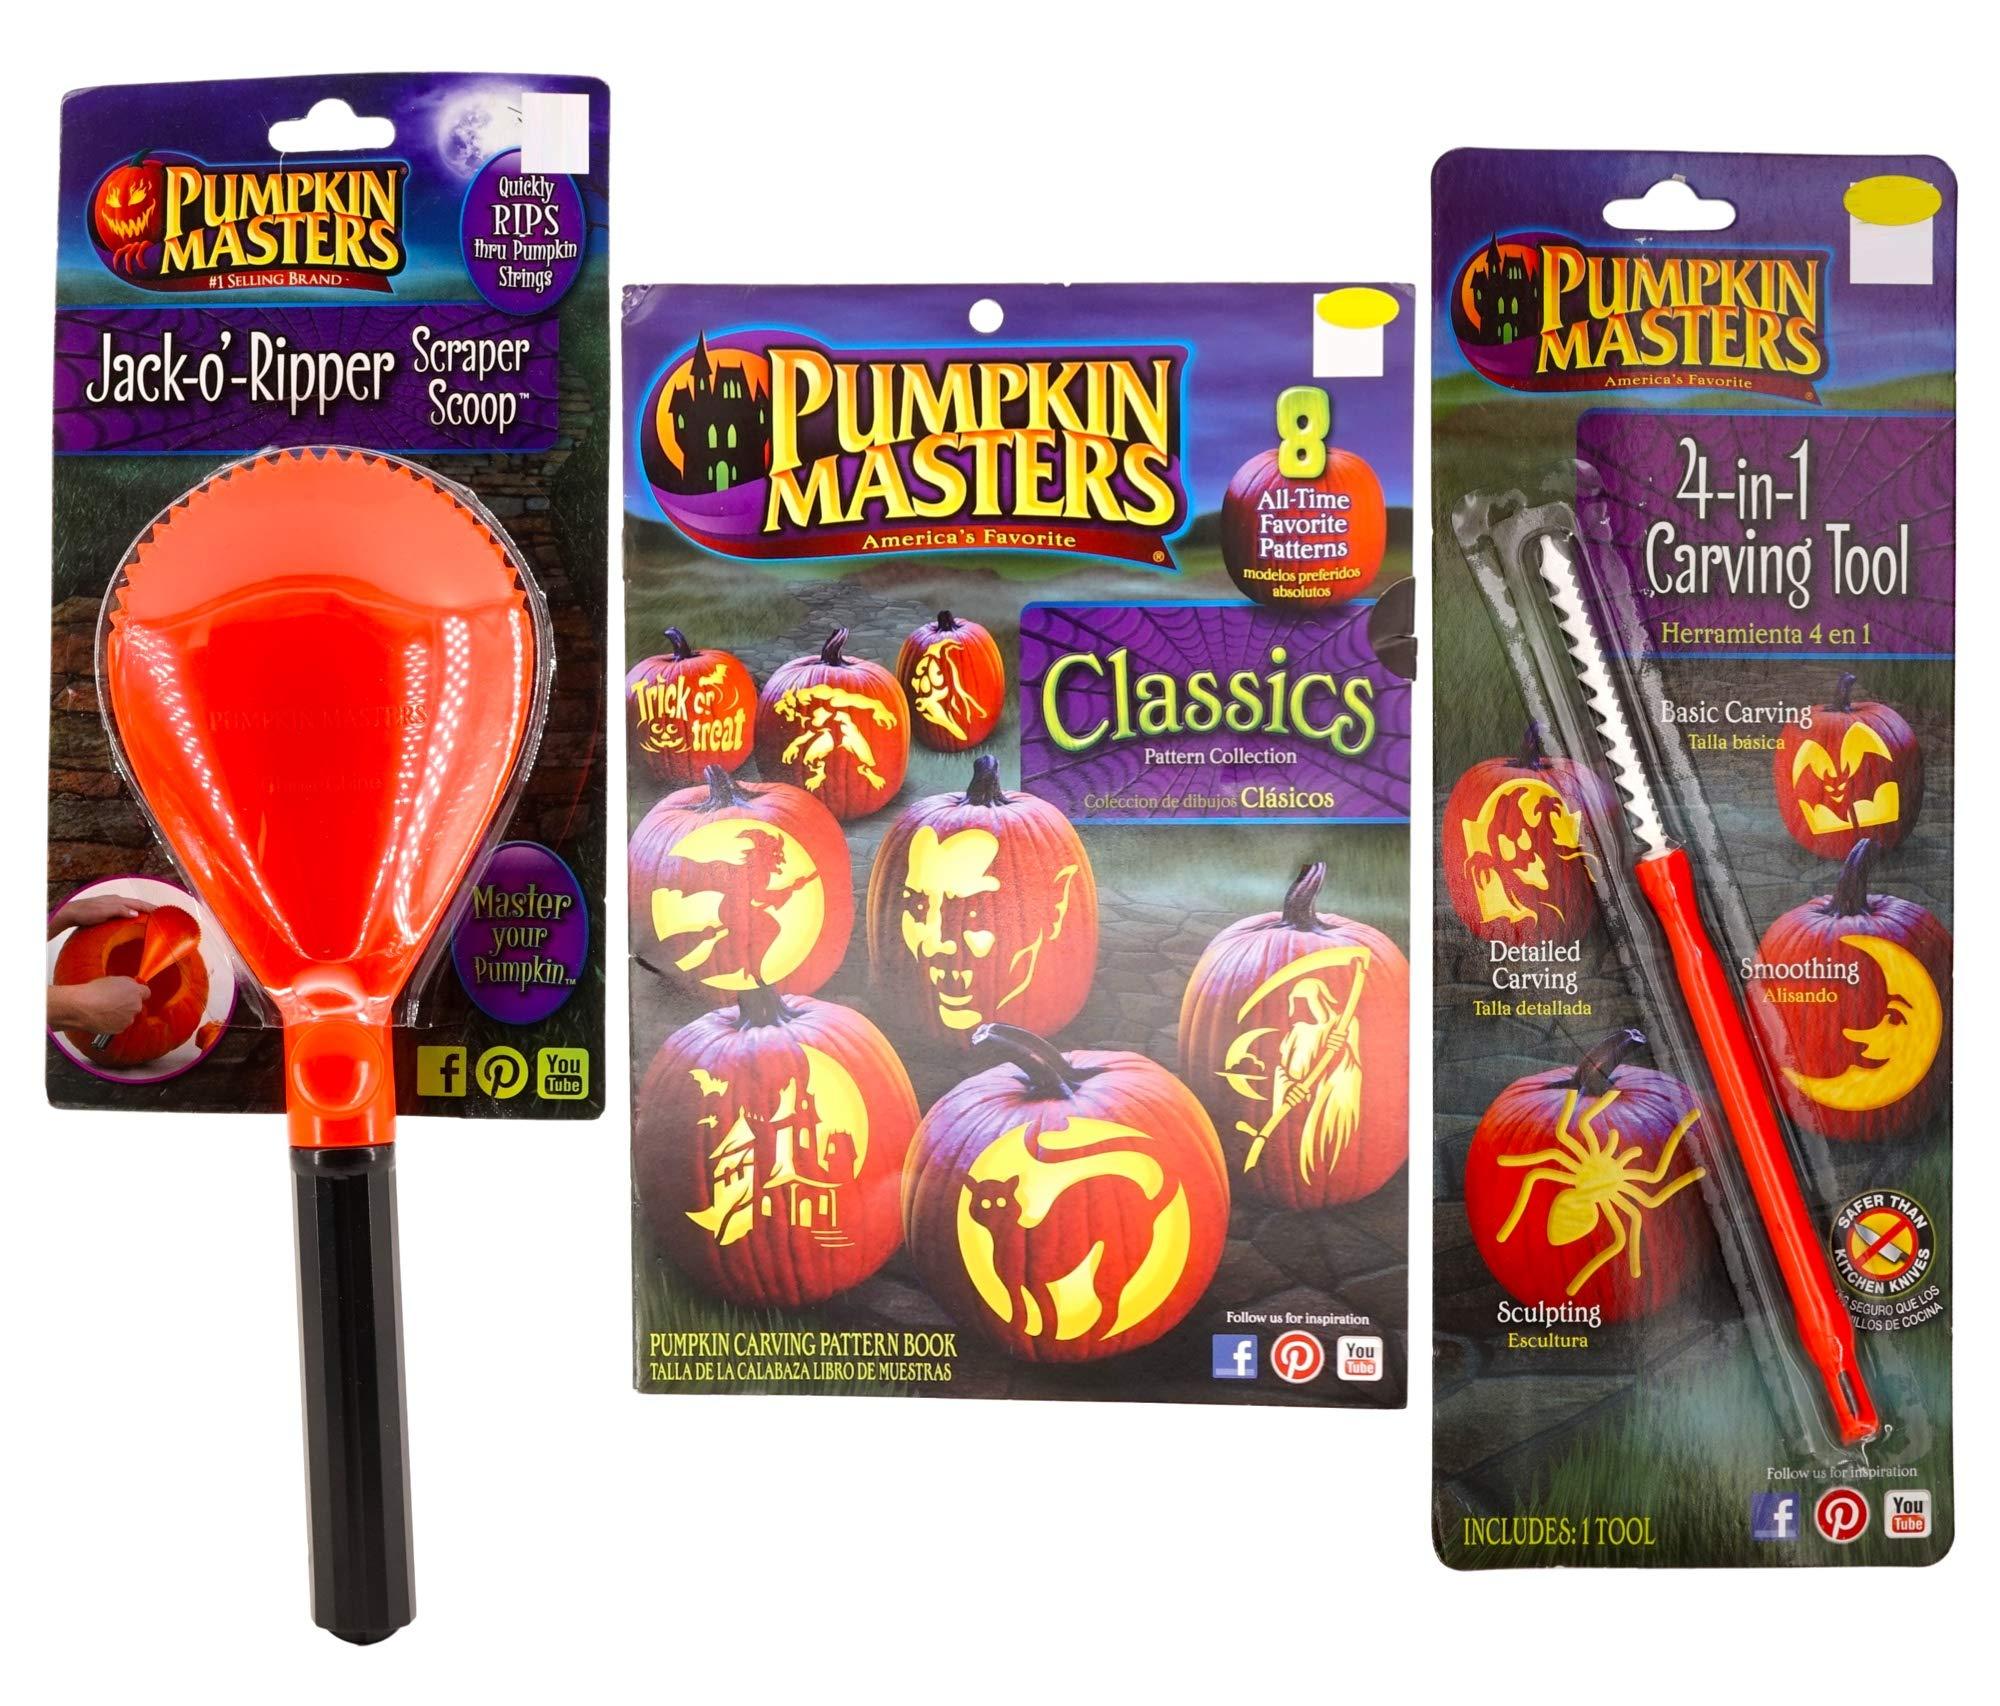 Jack-O-Lantern Complete Carving Kit (3 Pieces - Classics Pattern Collection Book, 4-in-1 Carving Tool, Jack-o-Ripper Scraper Scoop) Halloween Pumpkin by Pumpkin Masters